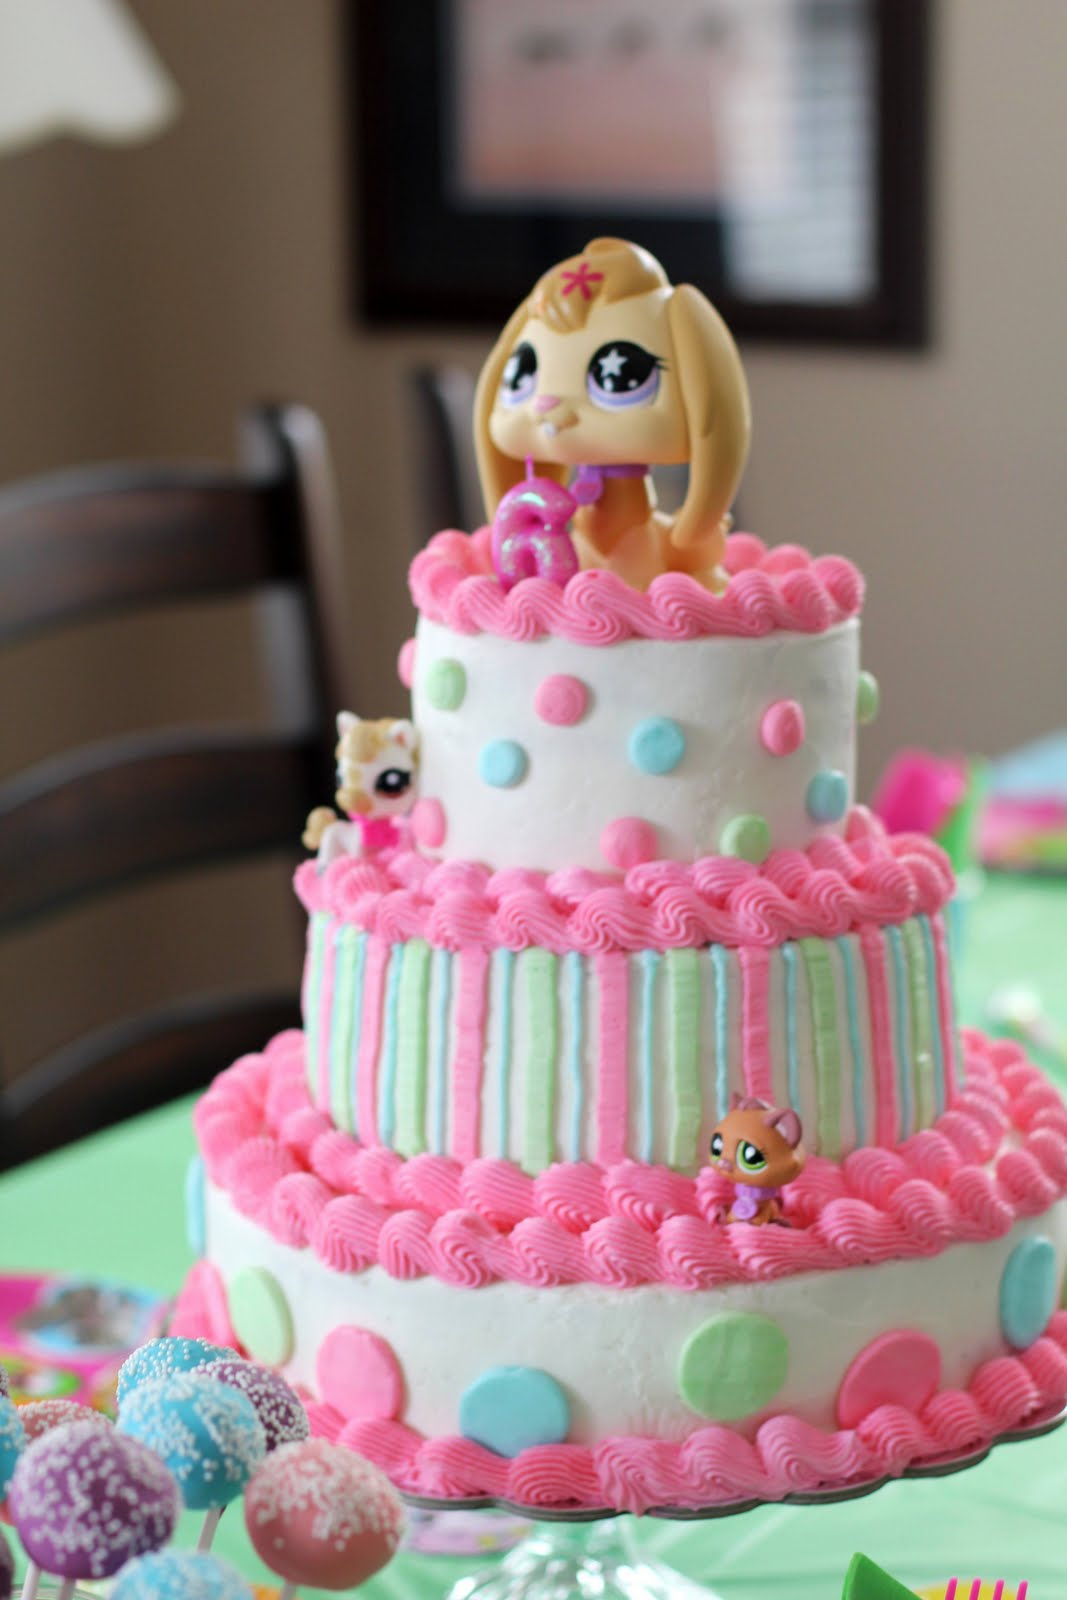 9 Photos of Pet Birthday Cakes